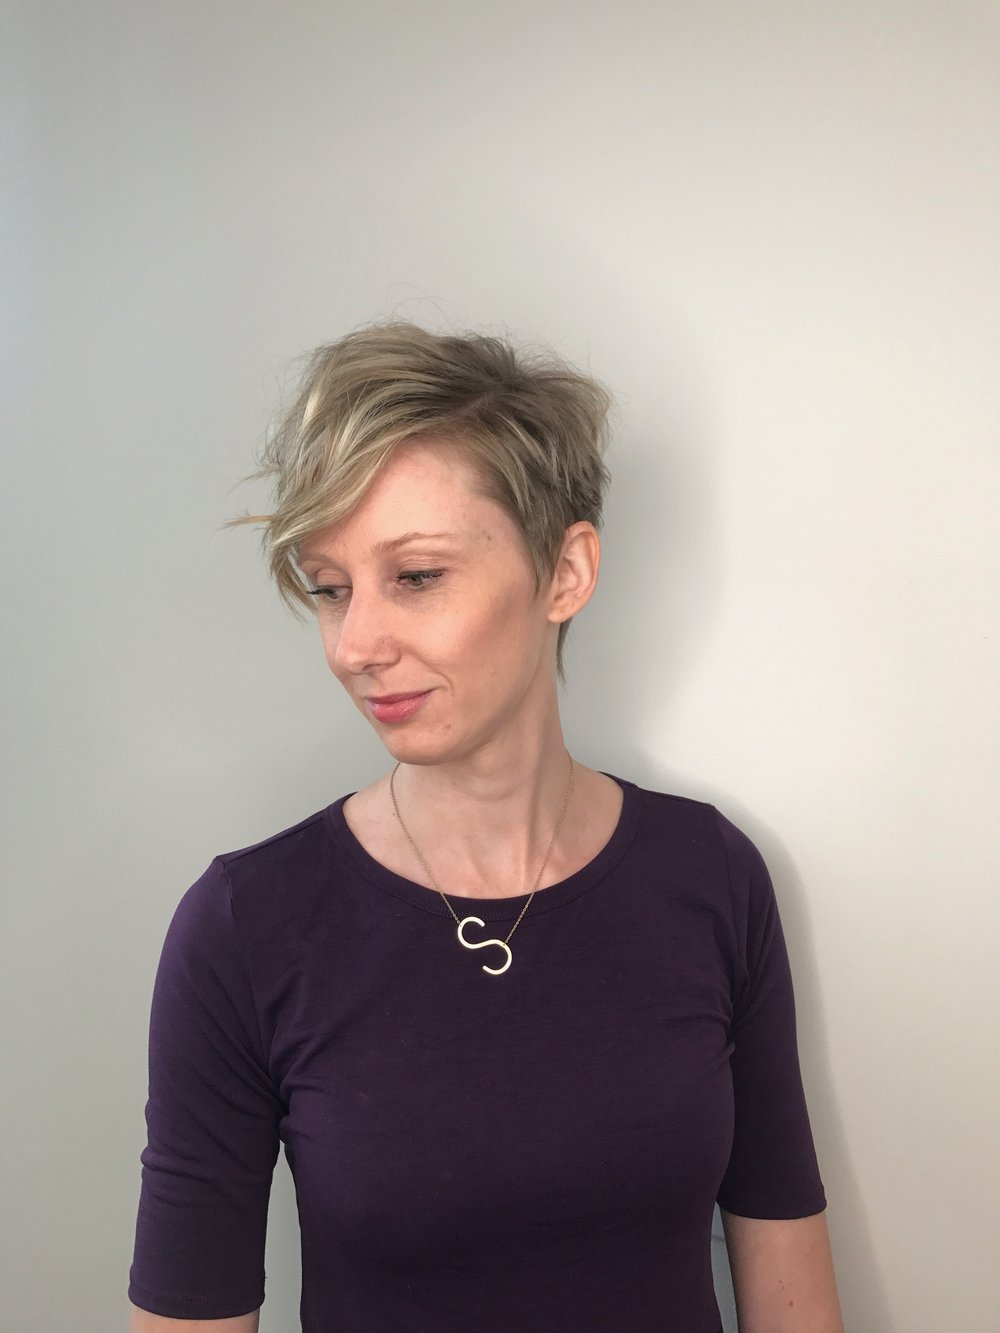 blonde pixie haircut dallas hair salon.JPG